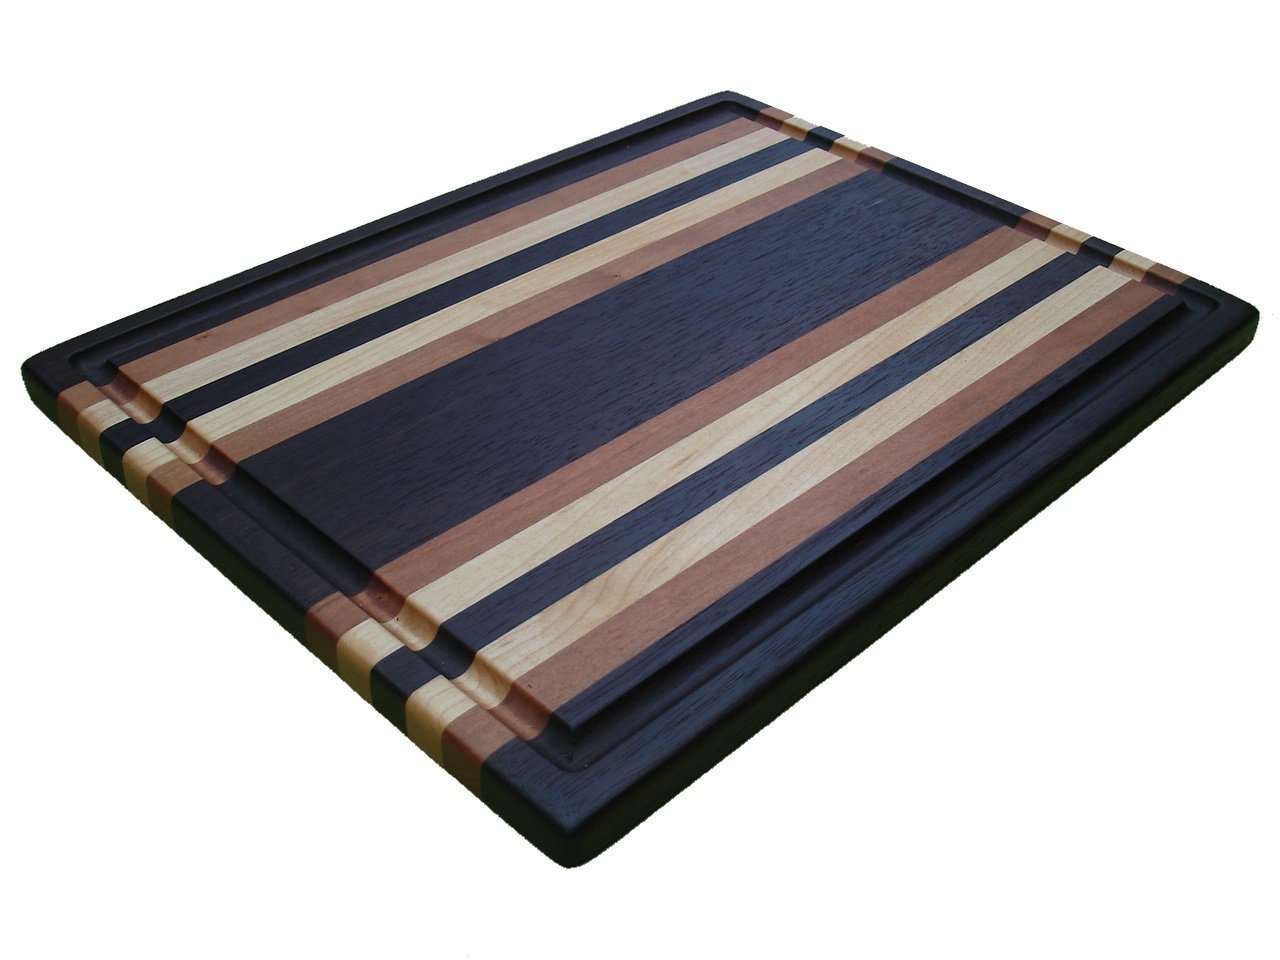 Coastal Christmas Tablescape Décor - Handmade Manhattan Series walnut, cherry & maple extra-large juice groove cutting board by TrimWoodworks